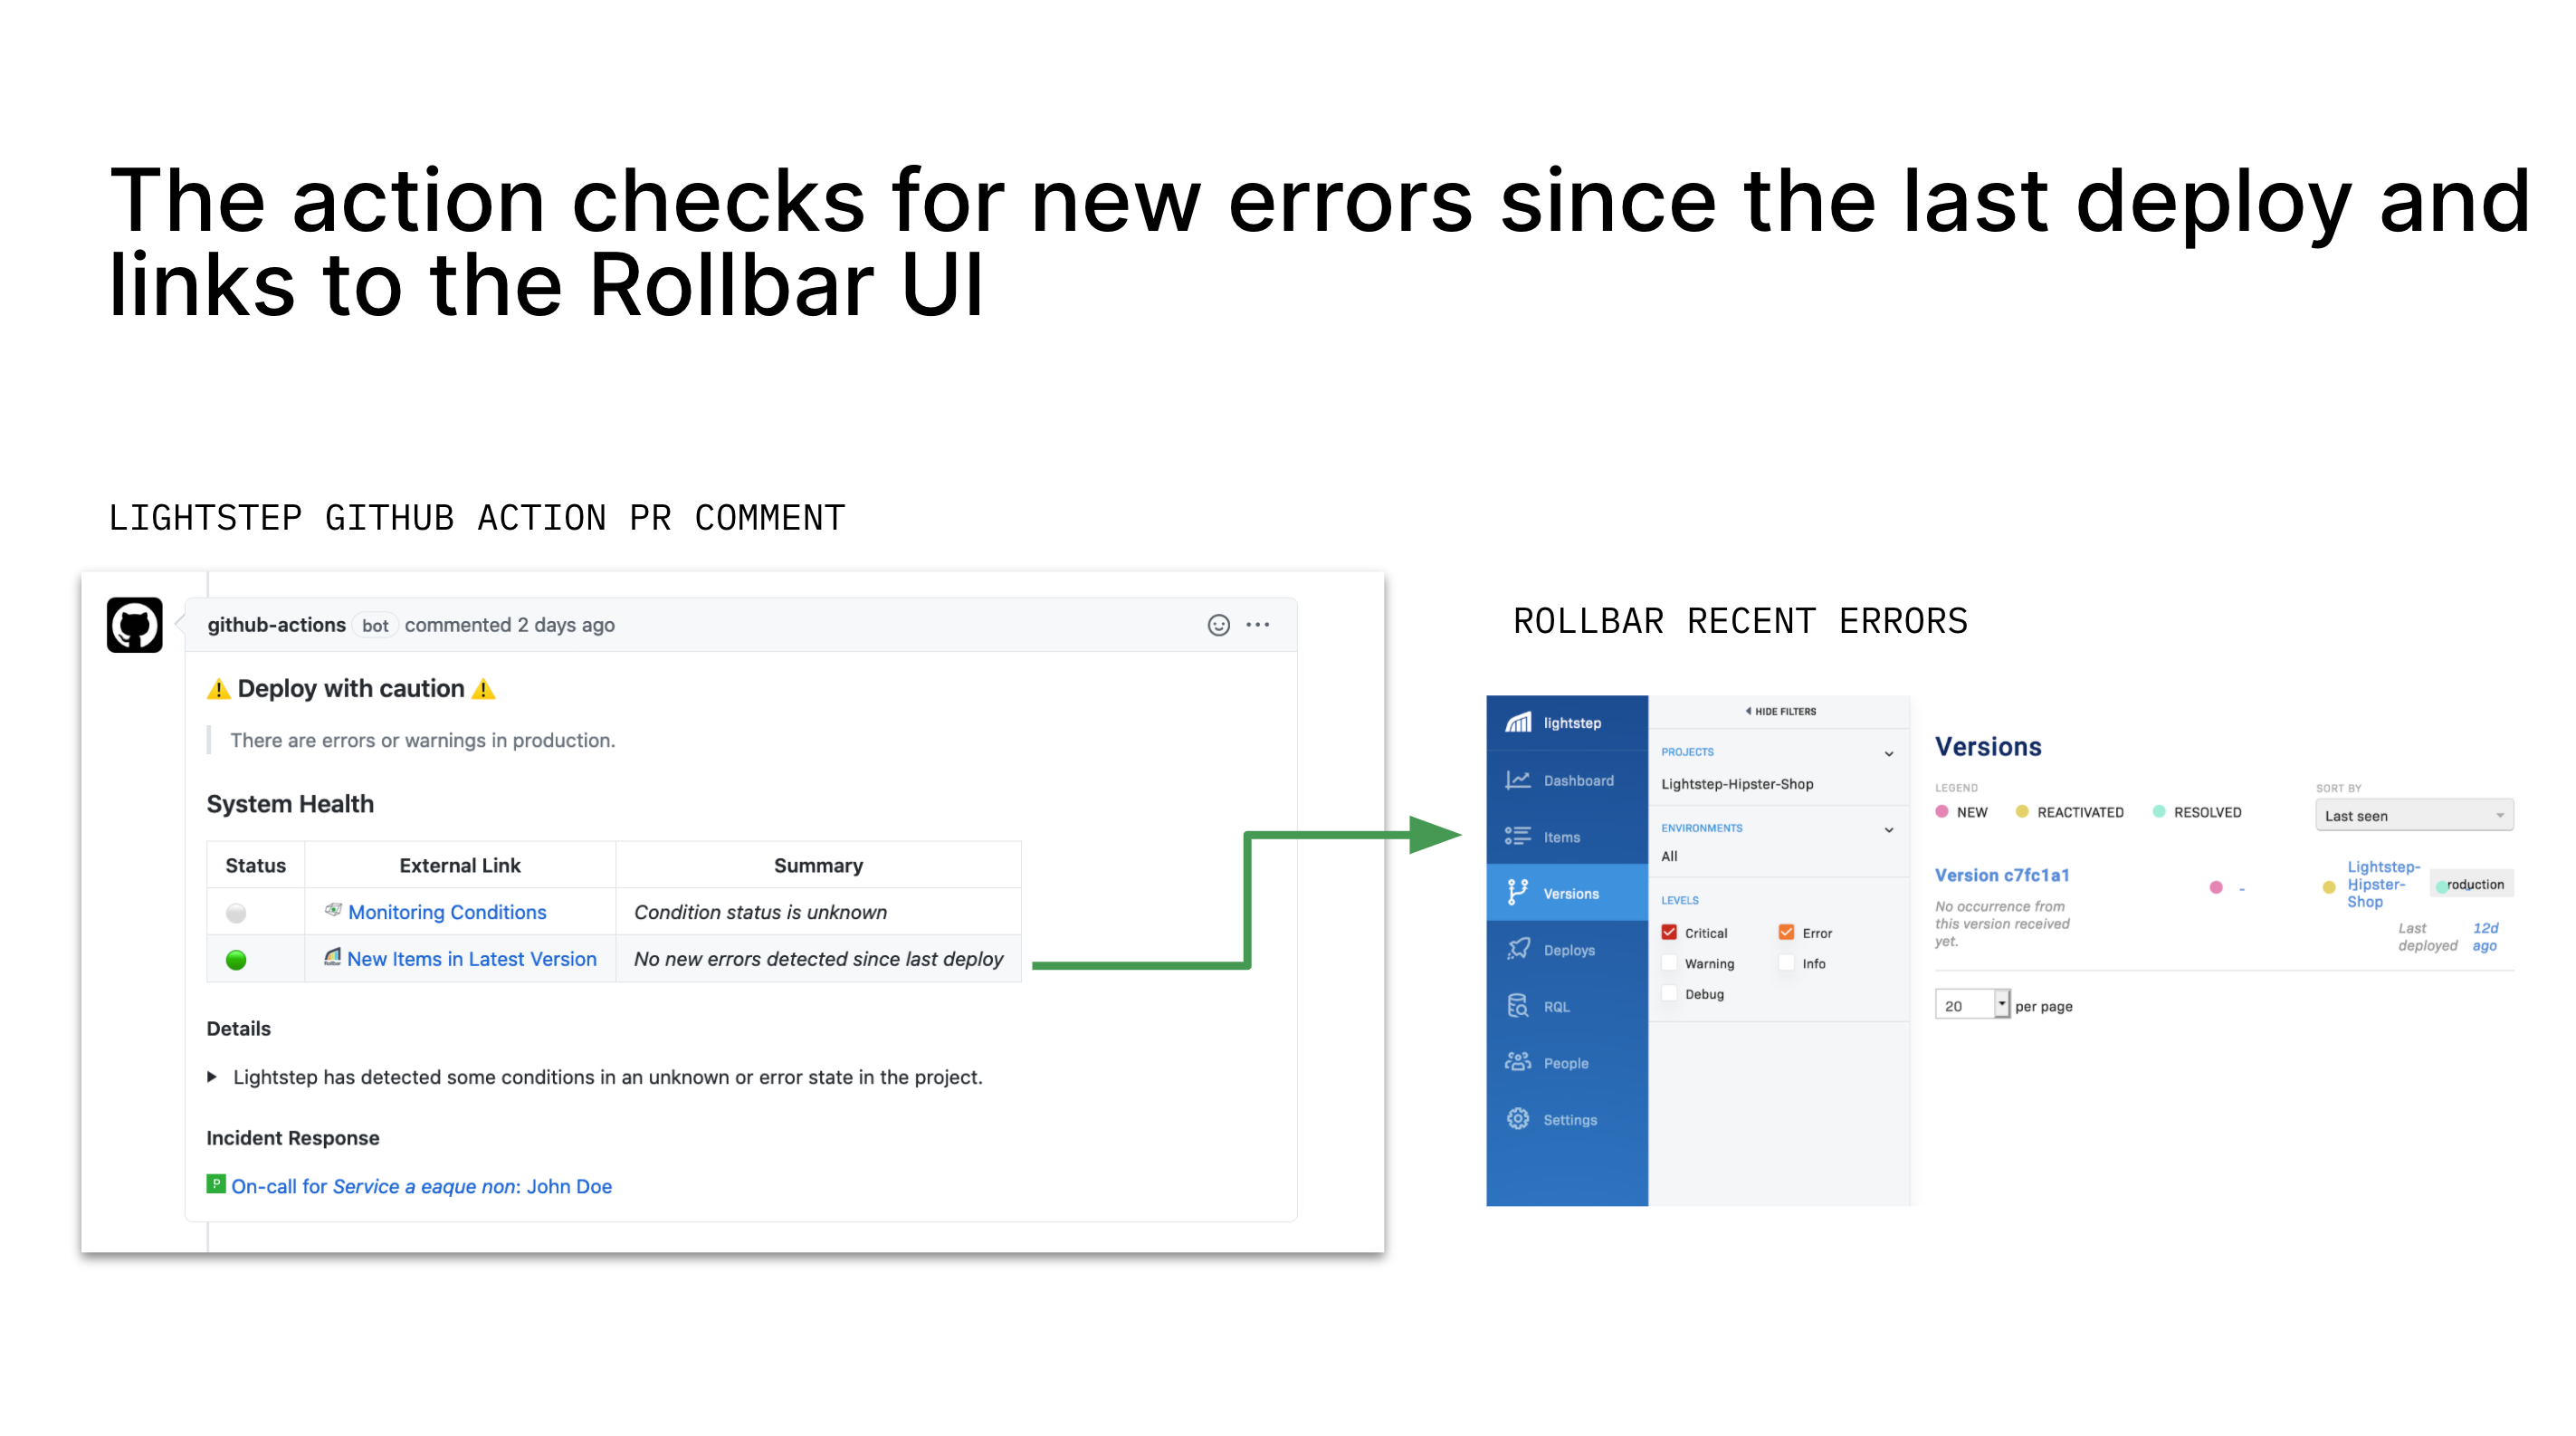 Lightstep Github Actions with Rollbar UI